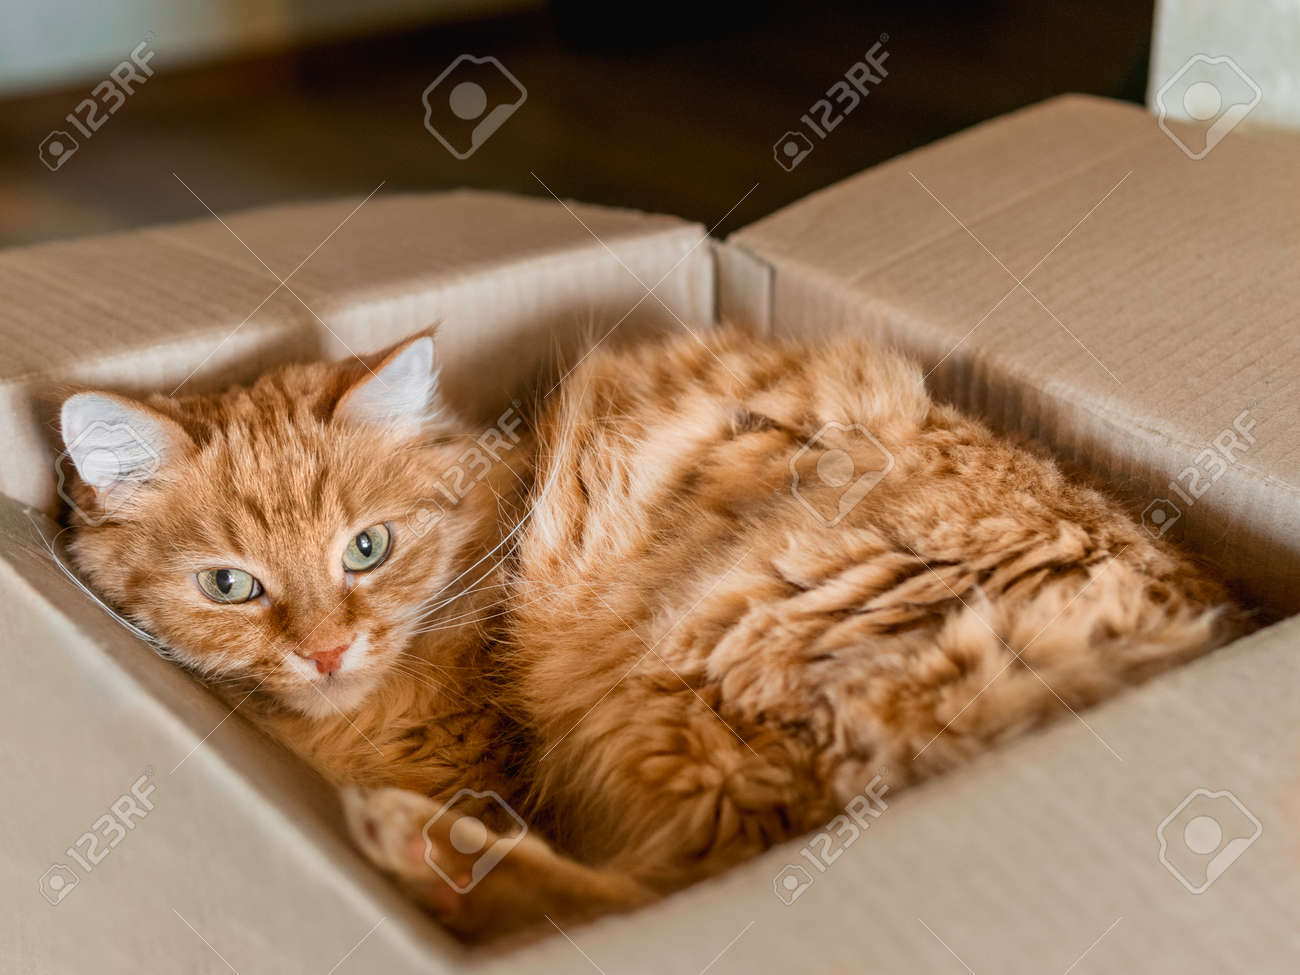 Cute ginger cat curled up in carton box. Fluffy pet is staring in camera. Little ball of fur sleeps anywhere. - 173429963